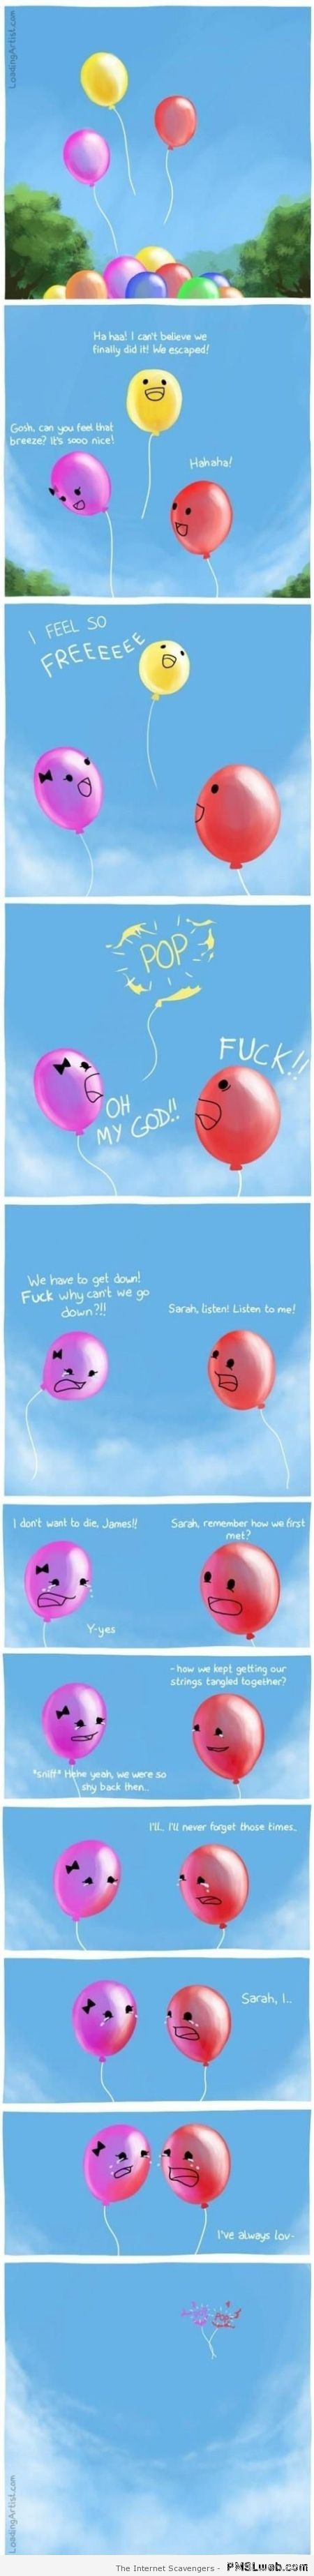 Balloon love funny cartoon at PMSLweb.com